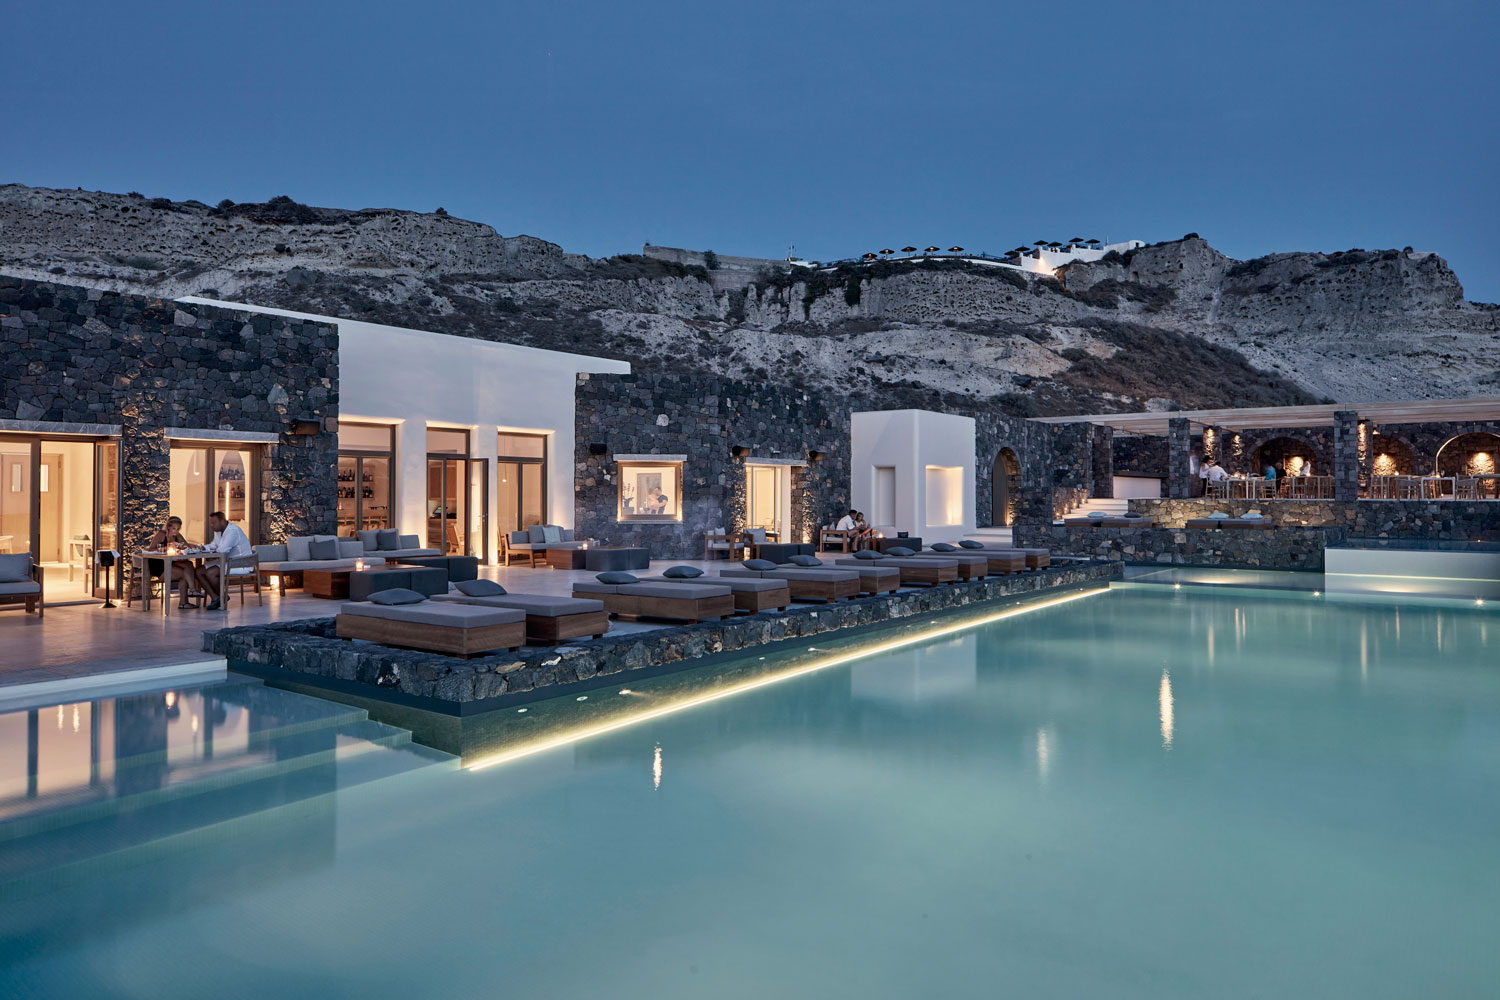 Oia Epitome Hotel Offers Infinite Views To Cycladic Landscape -WWW.AUTHENTICINTERIOR.COM design studio & blog Photography Christos Drazos